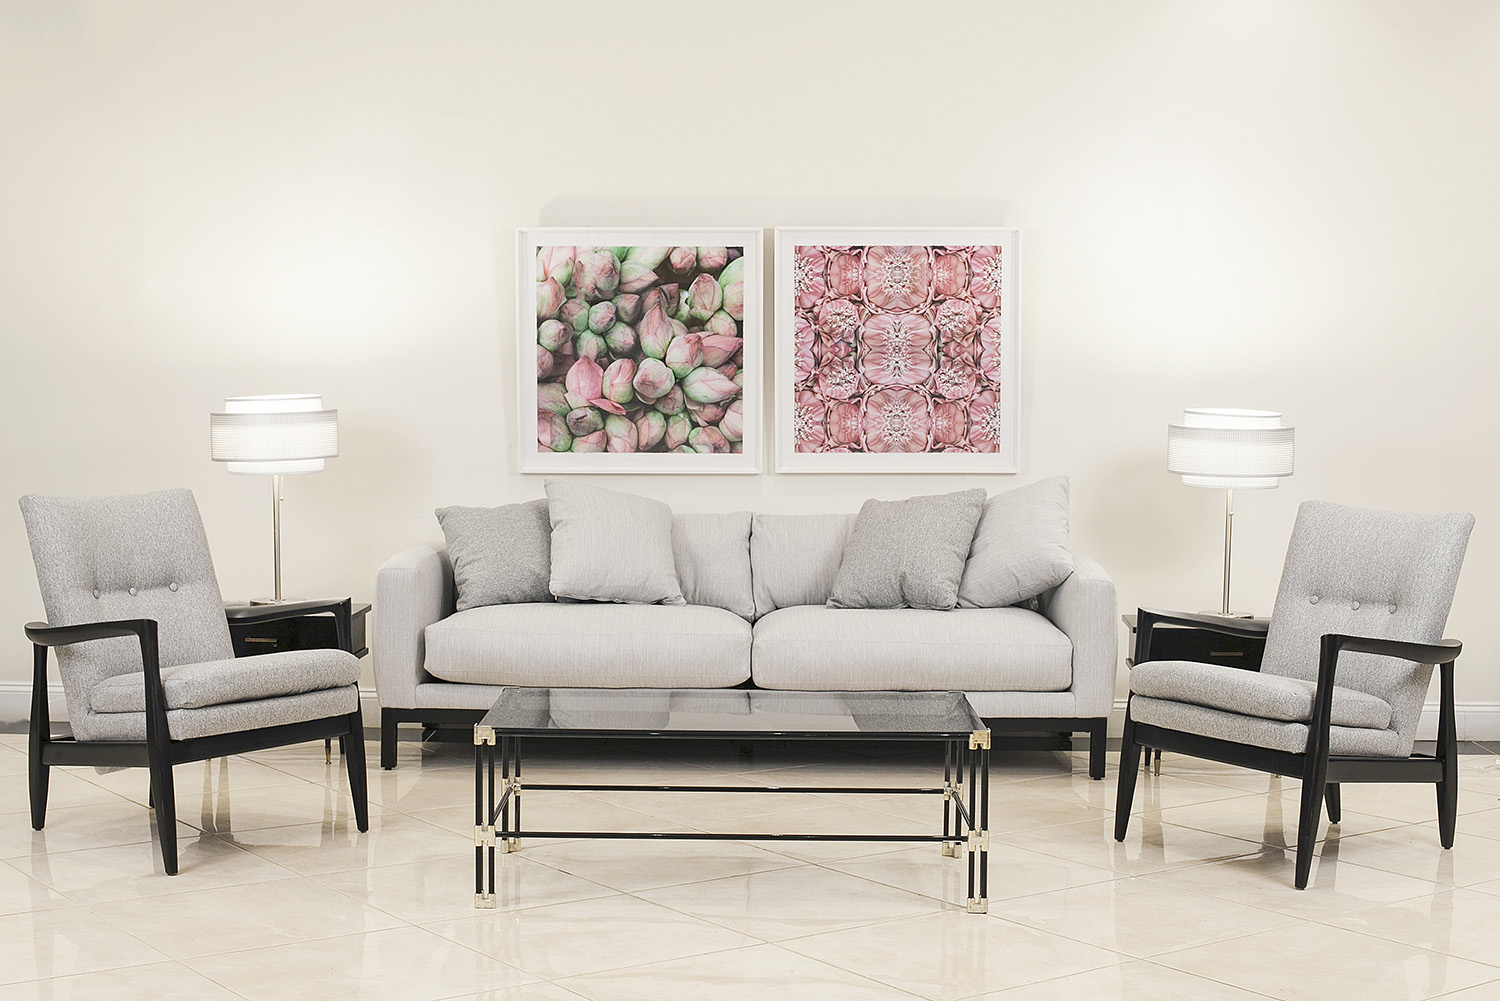 3 Piece Contemporary living room set of one 3-seat couch & 2 ...